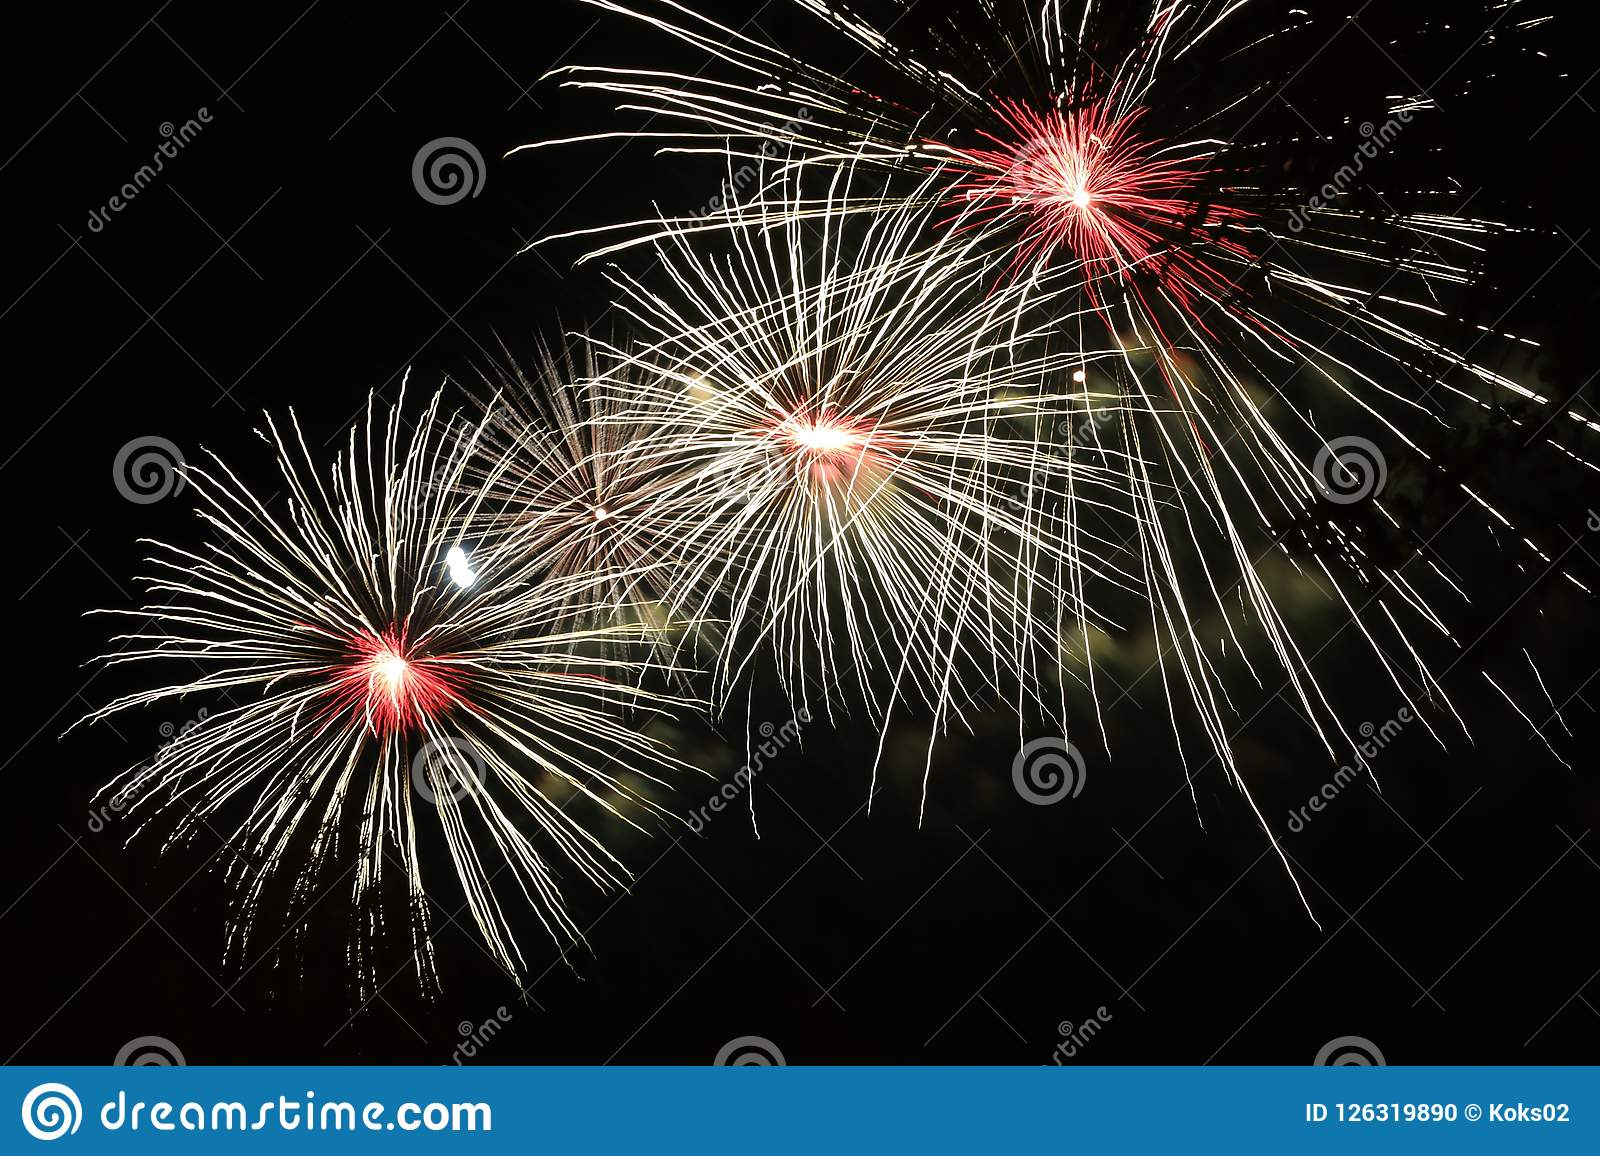 Wallpaper Salute Sky Holiday Colorful 3376x4220: Colorful Salute In The Night Sky Stock Photo